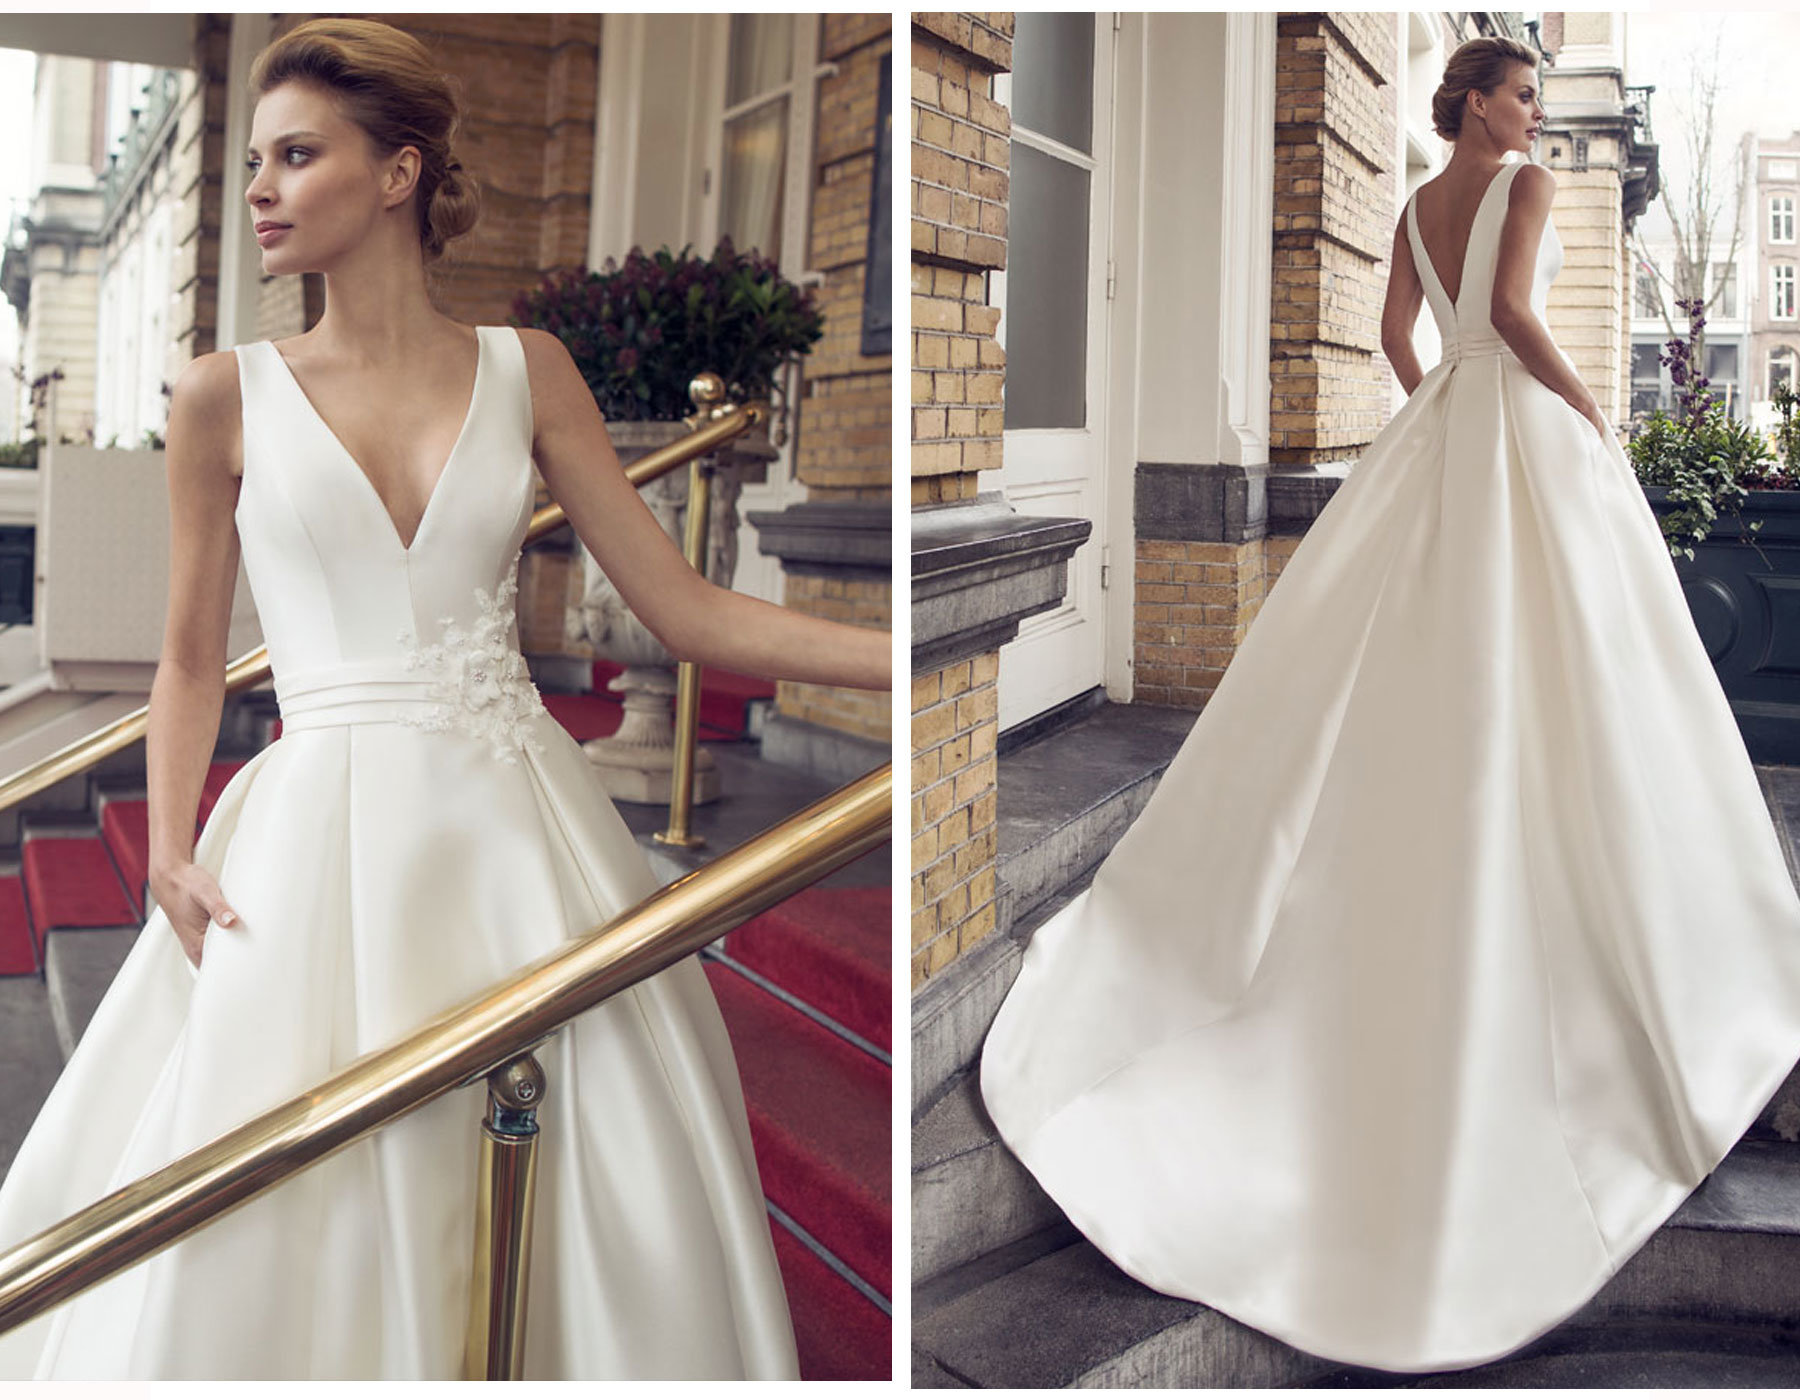 Satin Soft and Flowing Wedding Dress